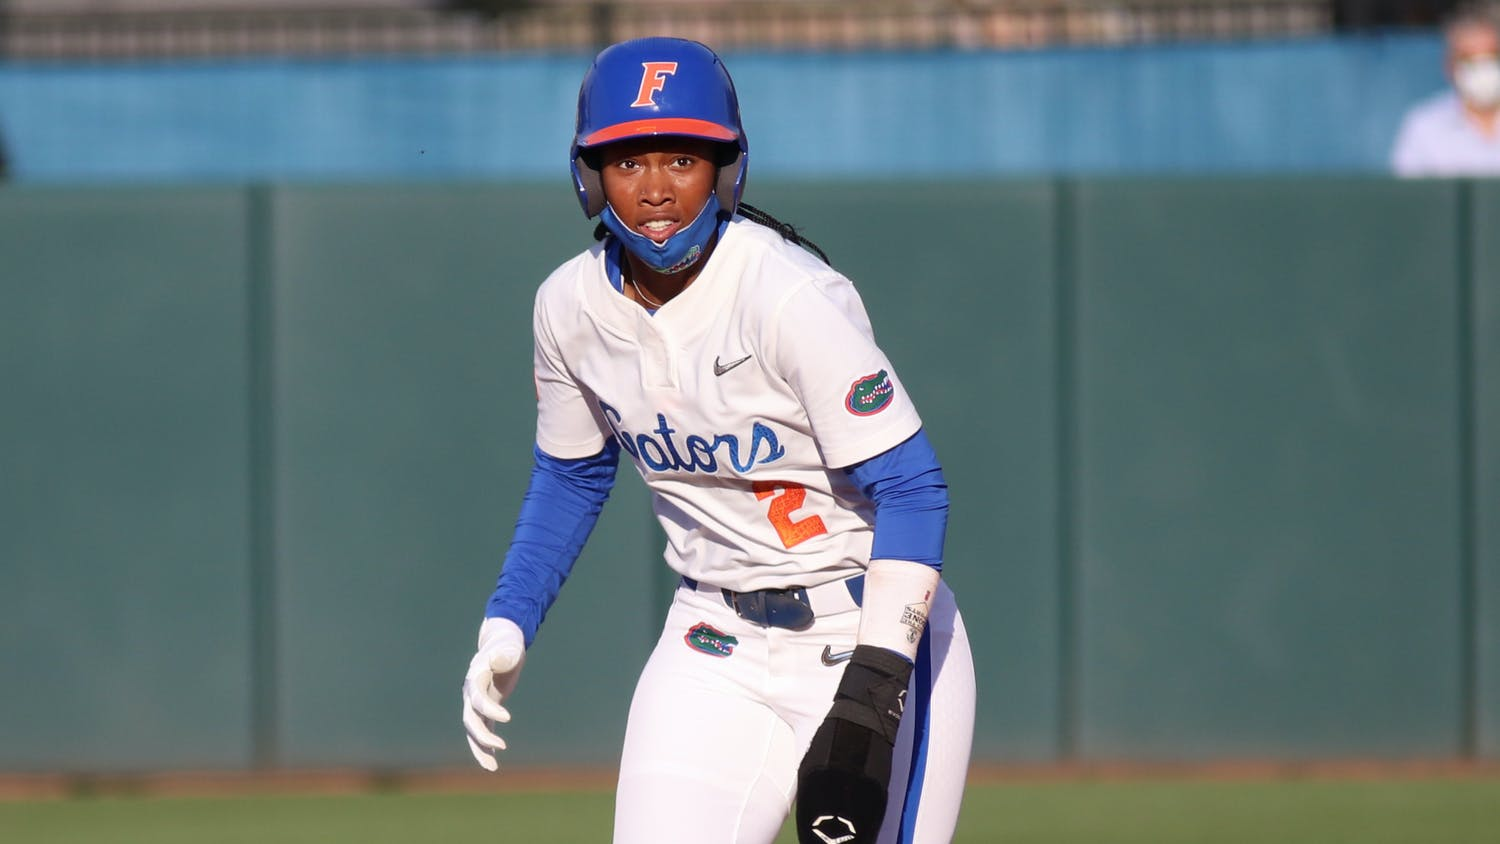 Lindsey stepped up and knocked a base-clearing triple off the left center wall. Photo from UF-FSU game March 3.